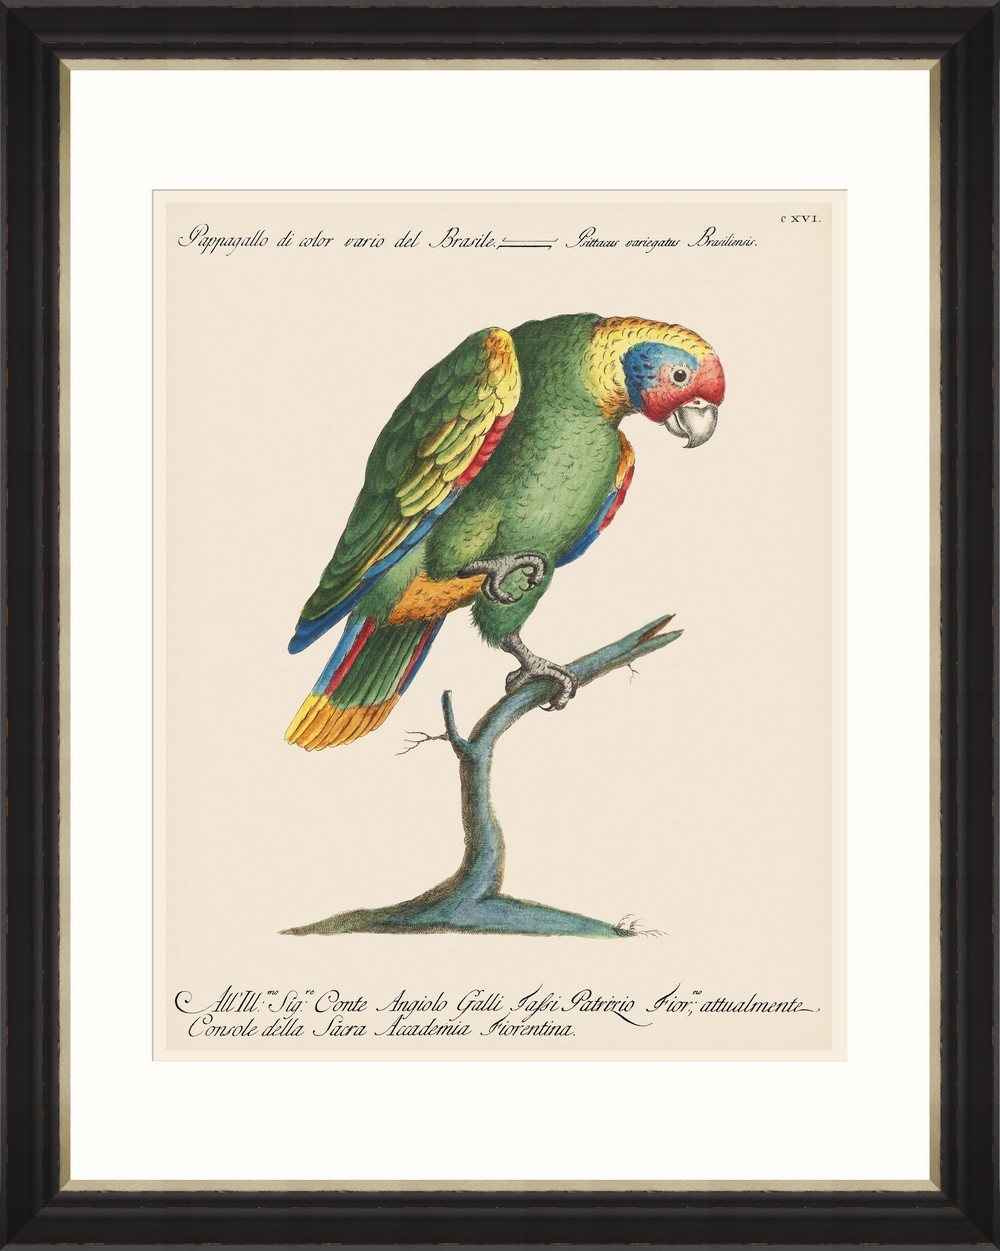 Tablou Framed Art Parrots Of Brazil 11